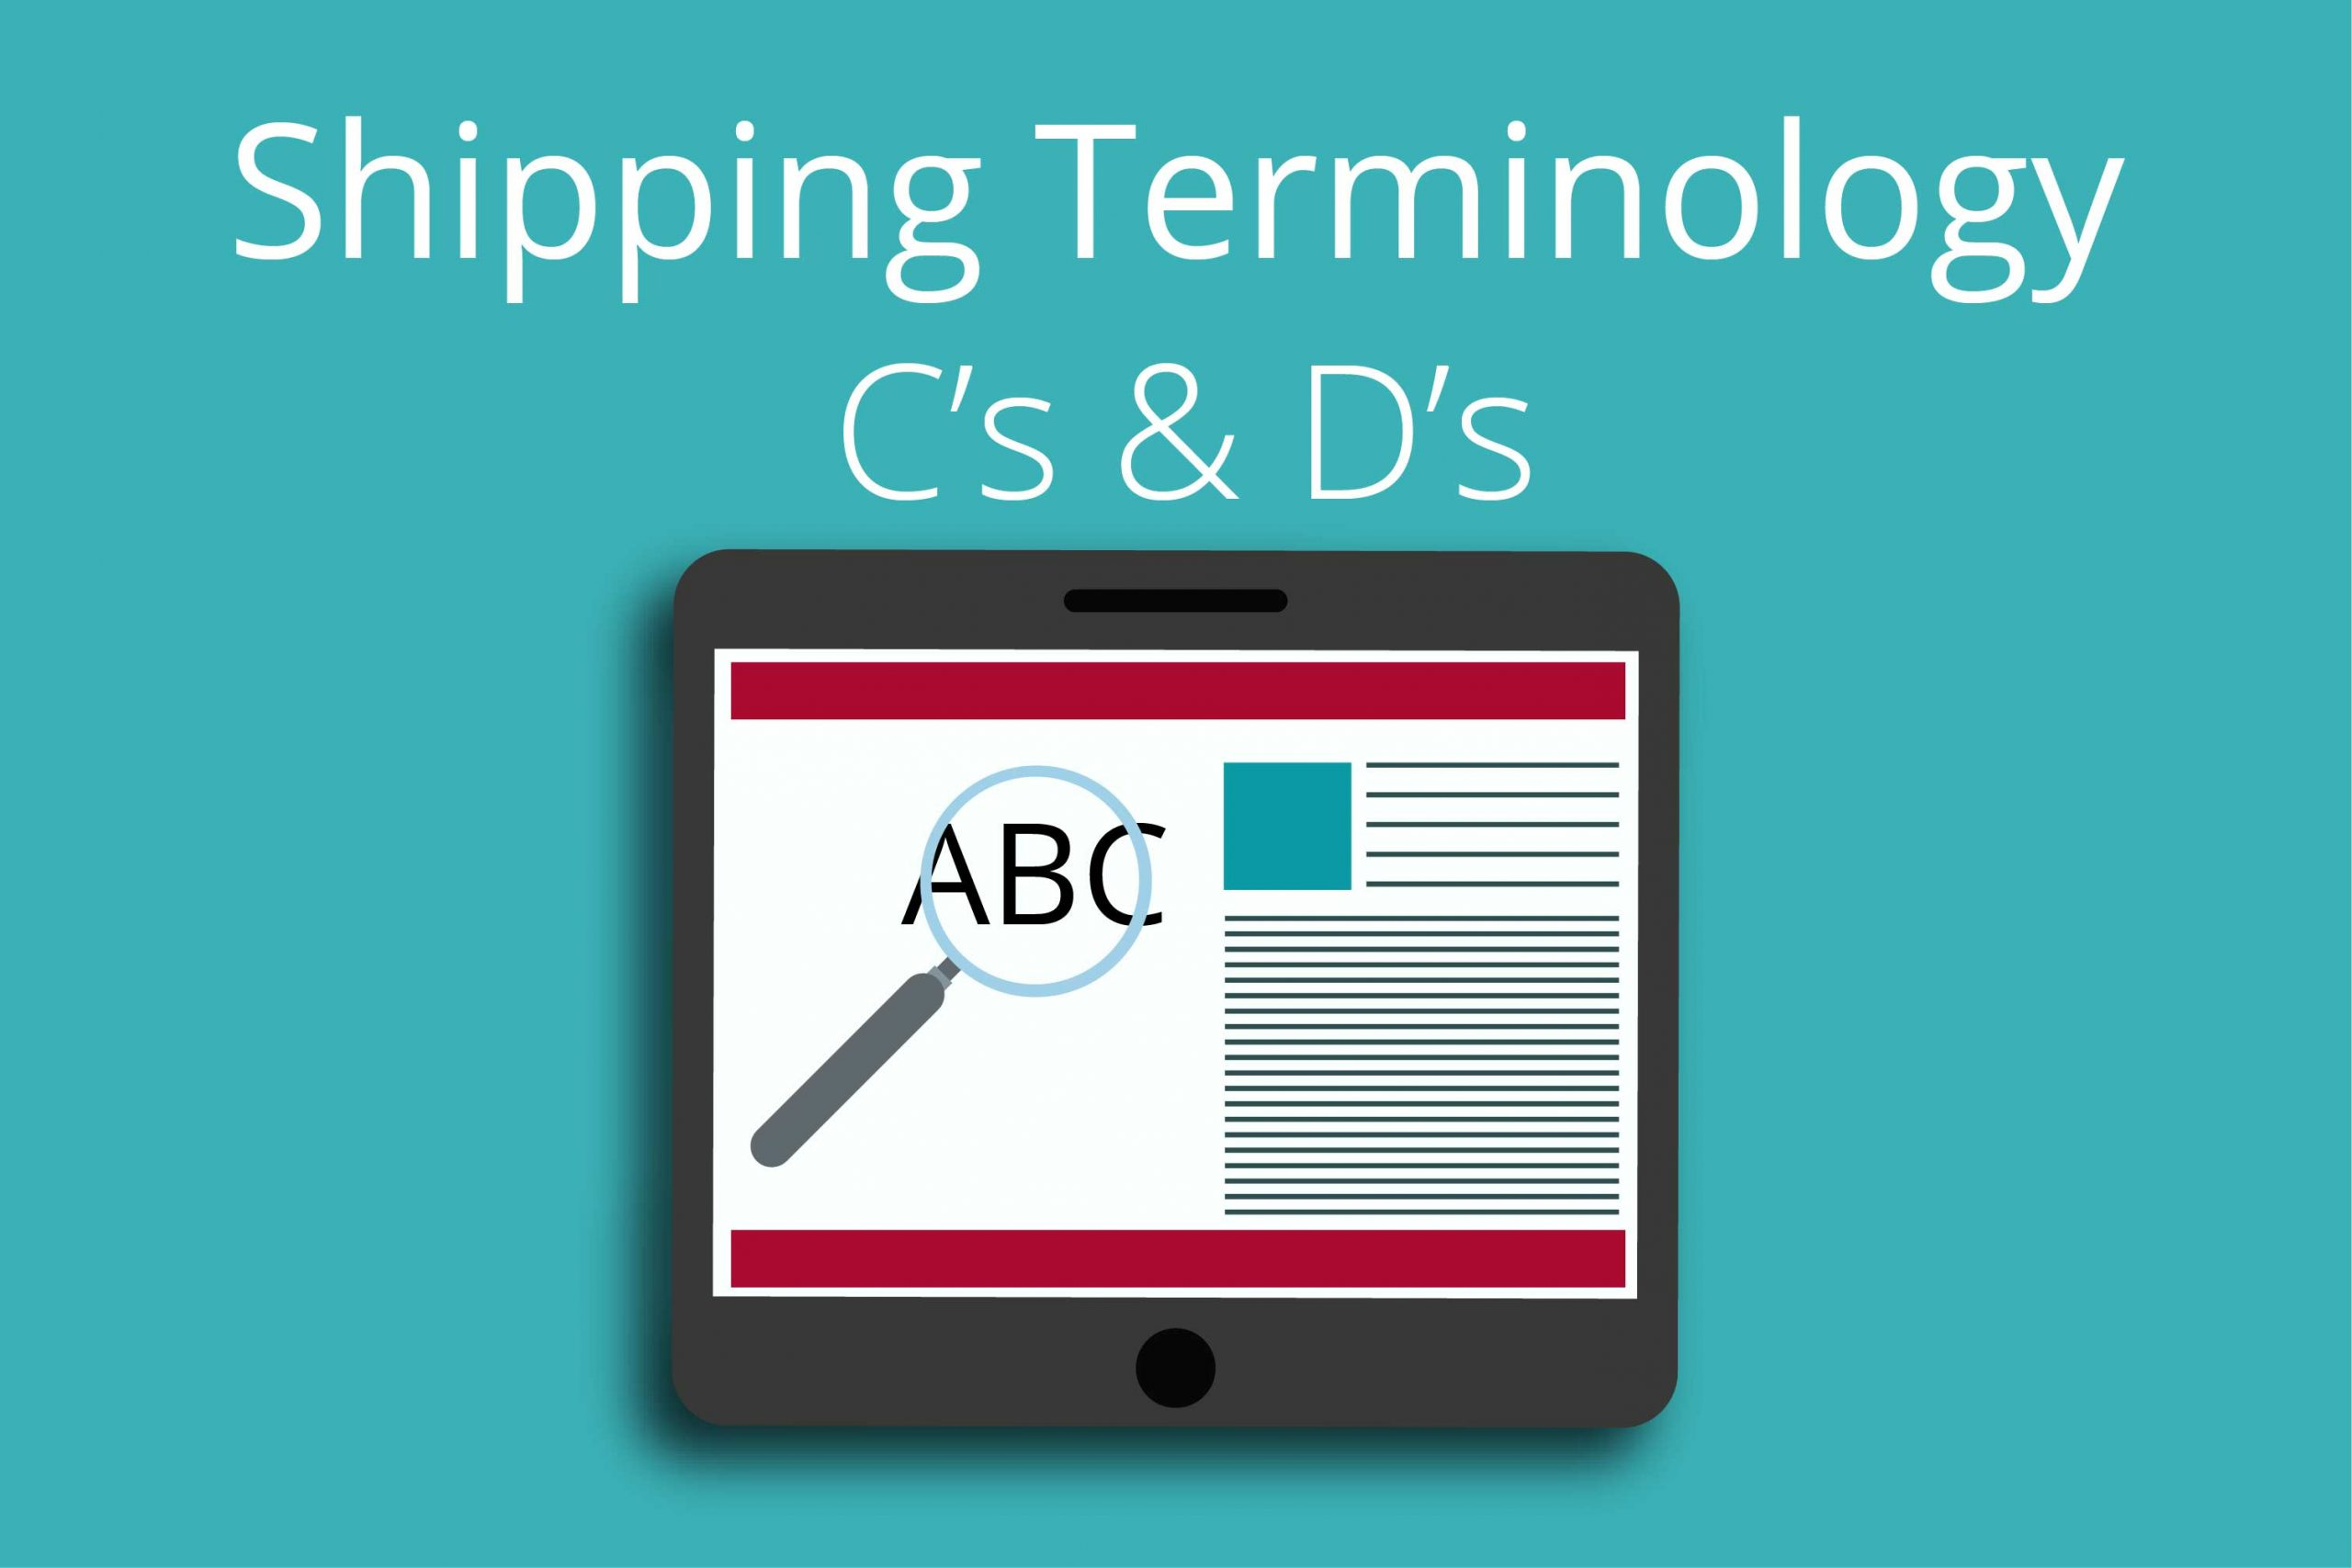 Shipping Terminology (C's & D's)